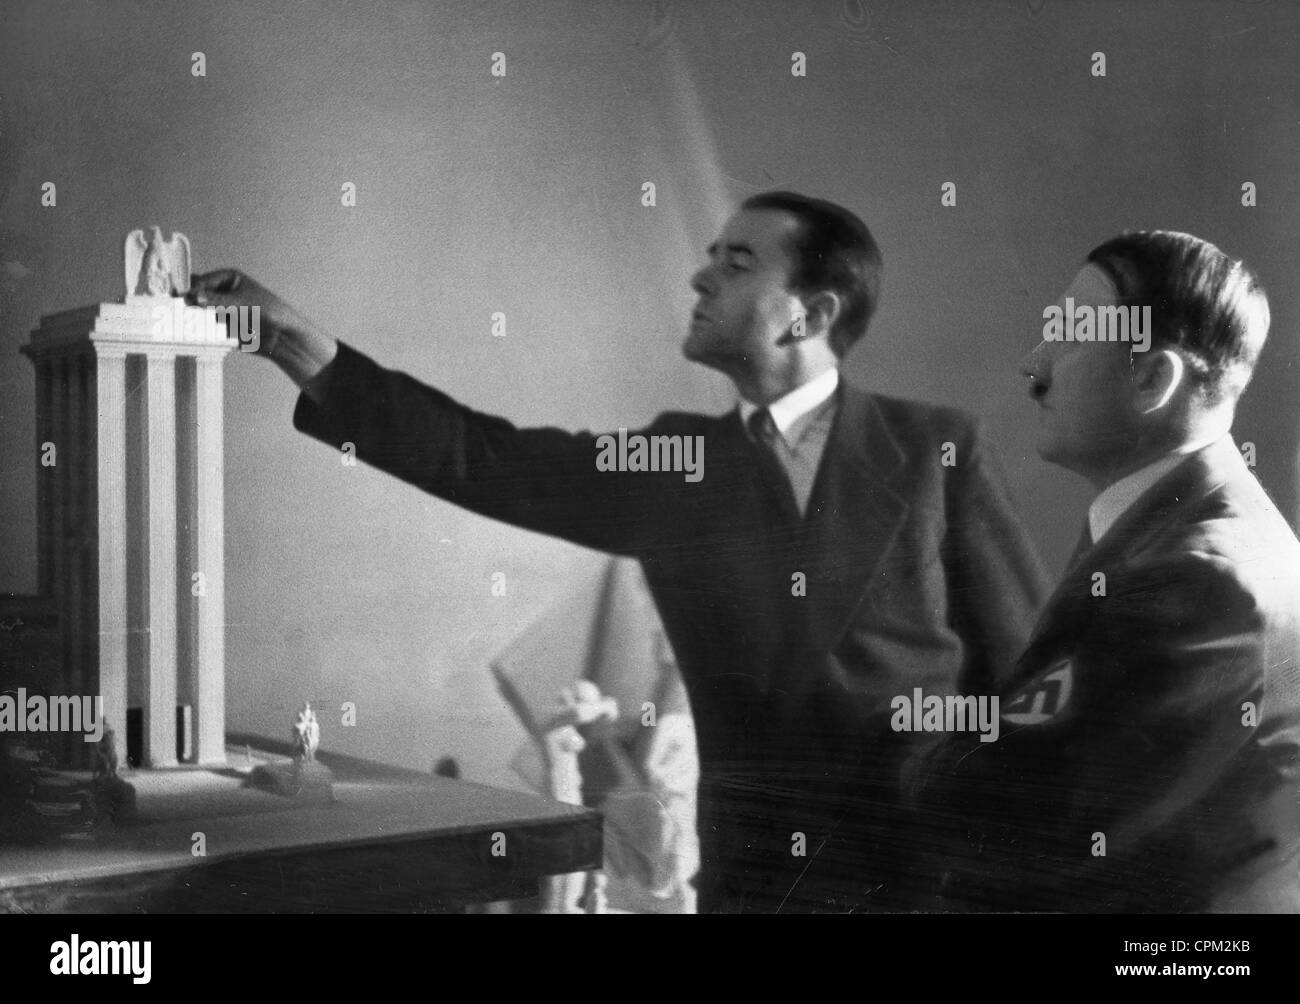 albert speer and the nazi party Describe albert speer's role in the nazi party from 1931 to 1945 overview: this report will give a background to albert speer, including his introduction to his career it will then outline.